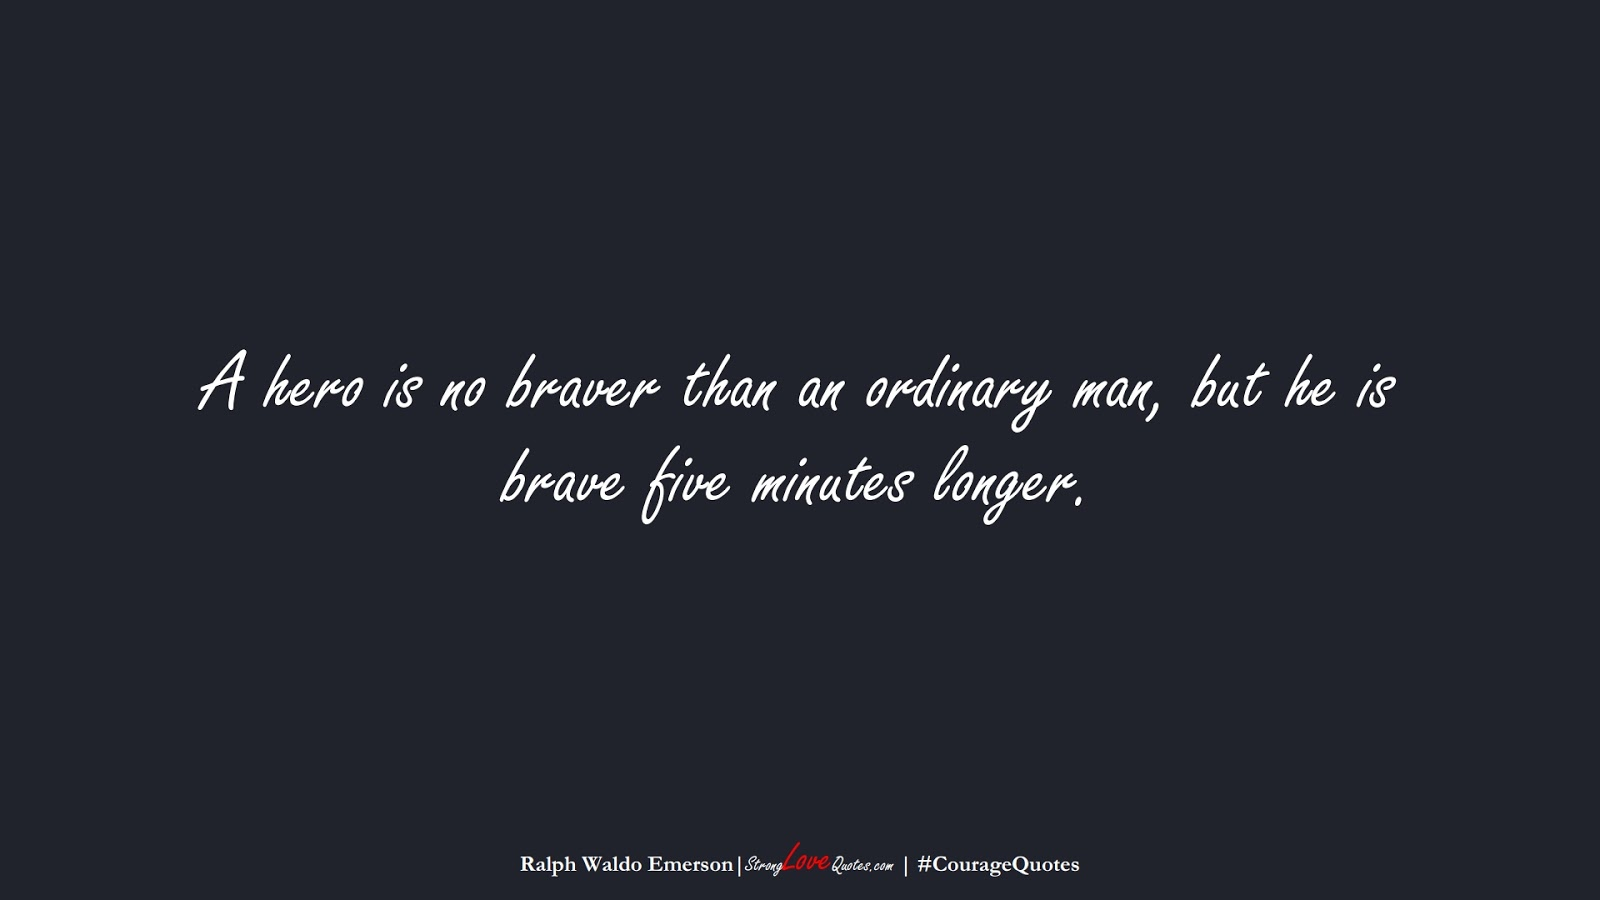 A hero is no braver than an ordinary man, but he is brave five minutes longer. (Ralph Waldo Emerson);  #CourageQuotes